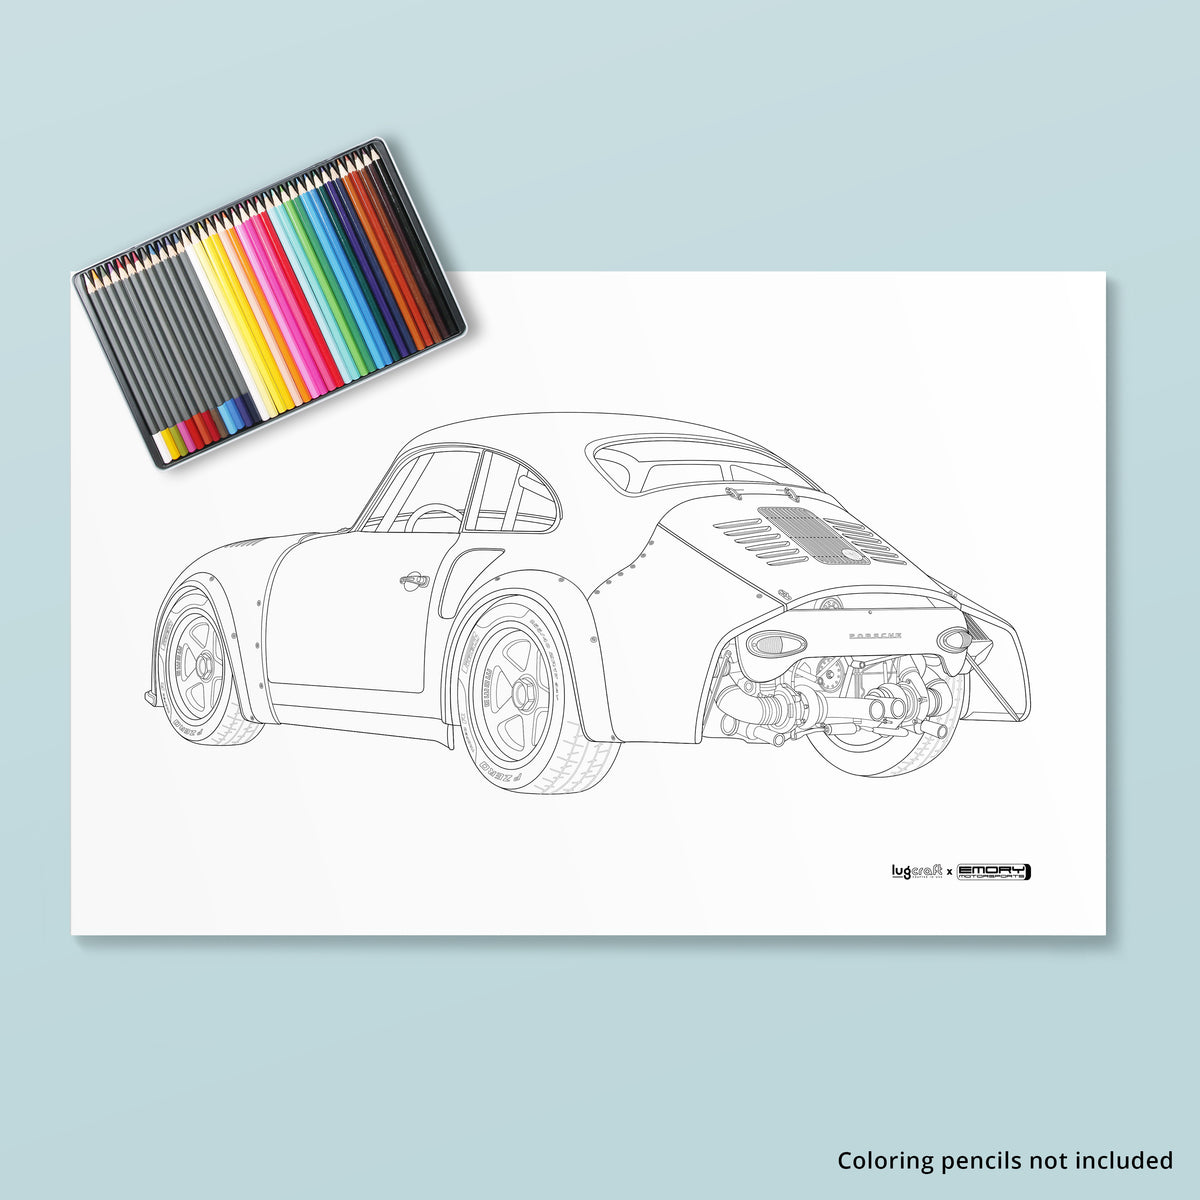 EMORY COLORING POSTER BUNDLE PACK - 3 x Posters - Lugcraft